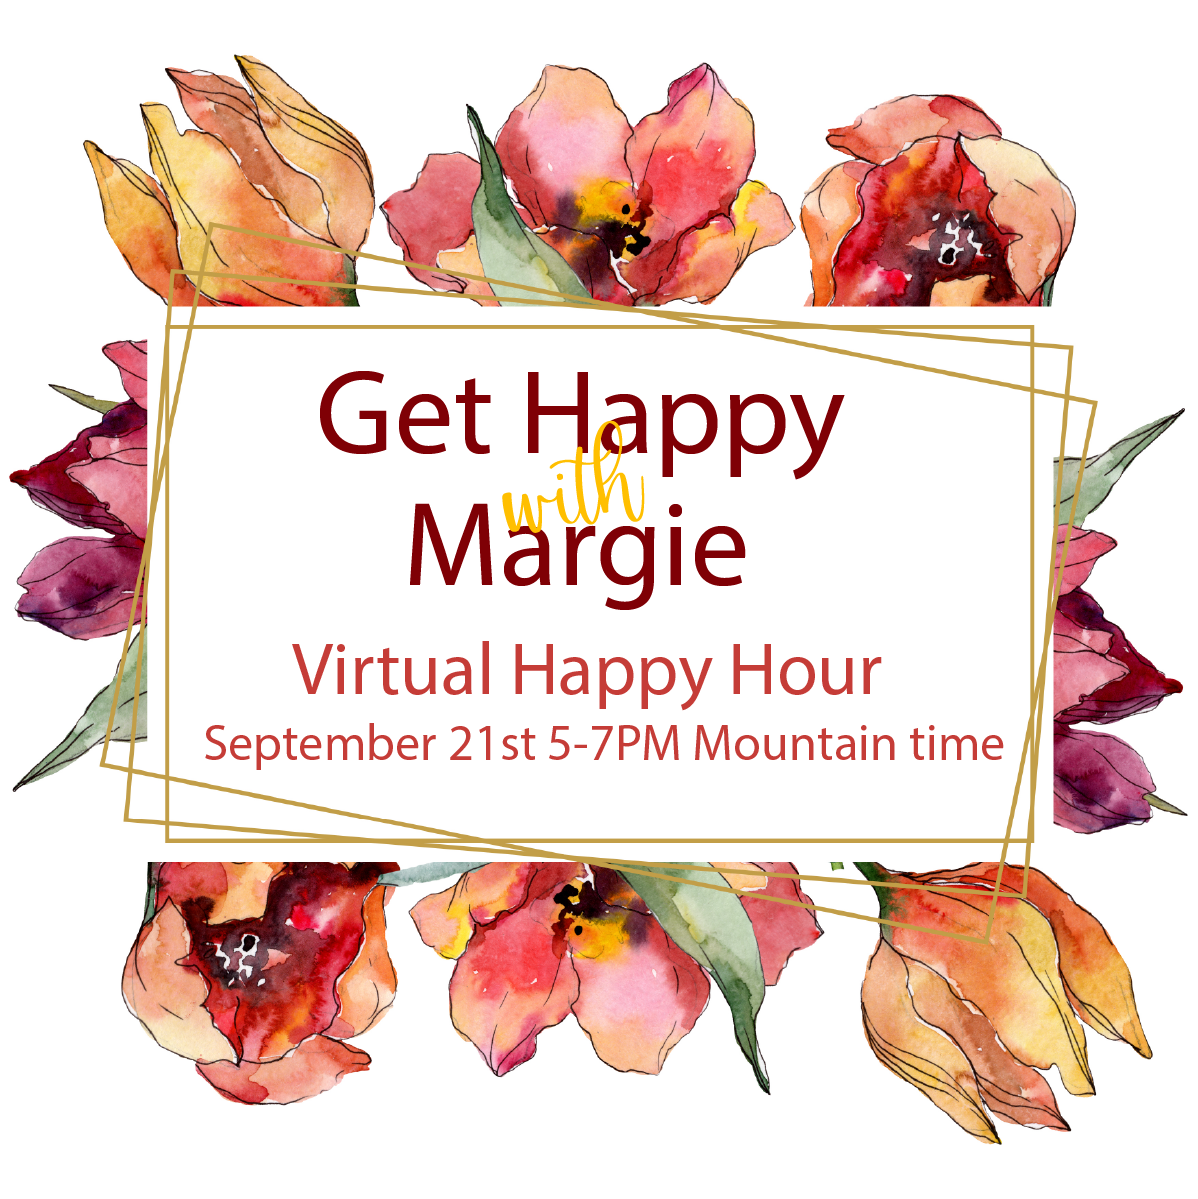 Get Happy with Margie September 21st, 5-7pm Mountain time